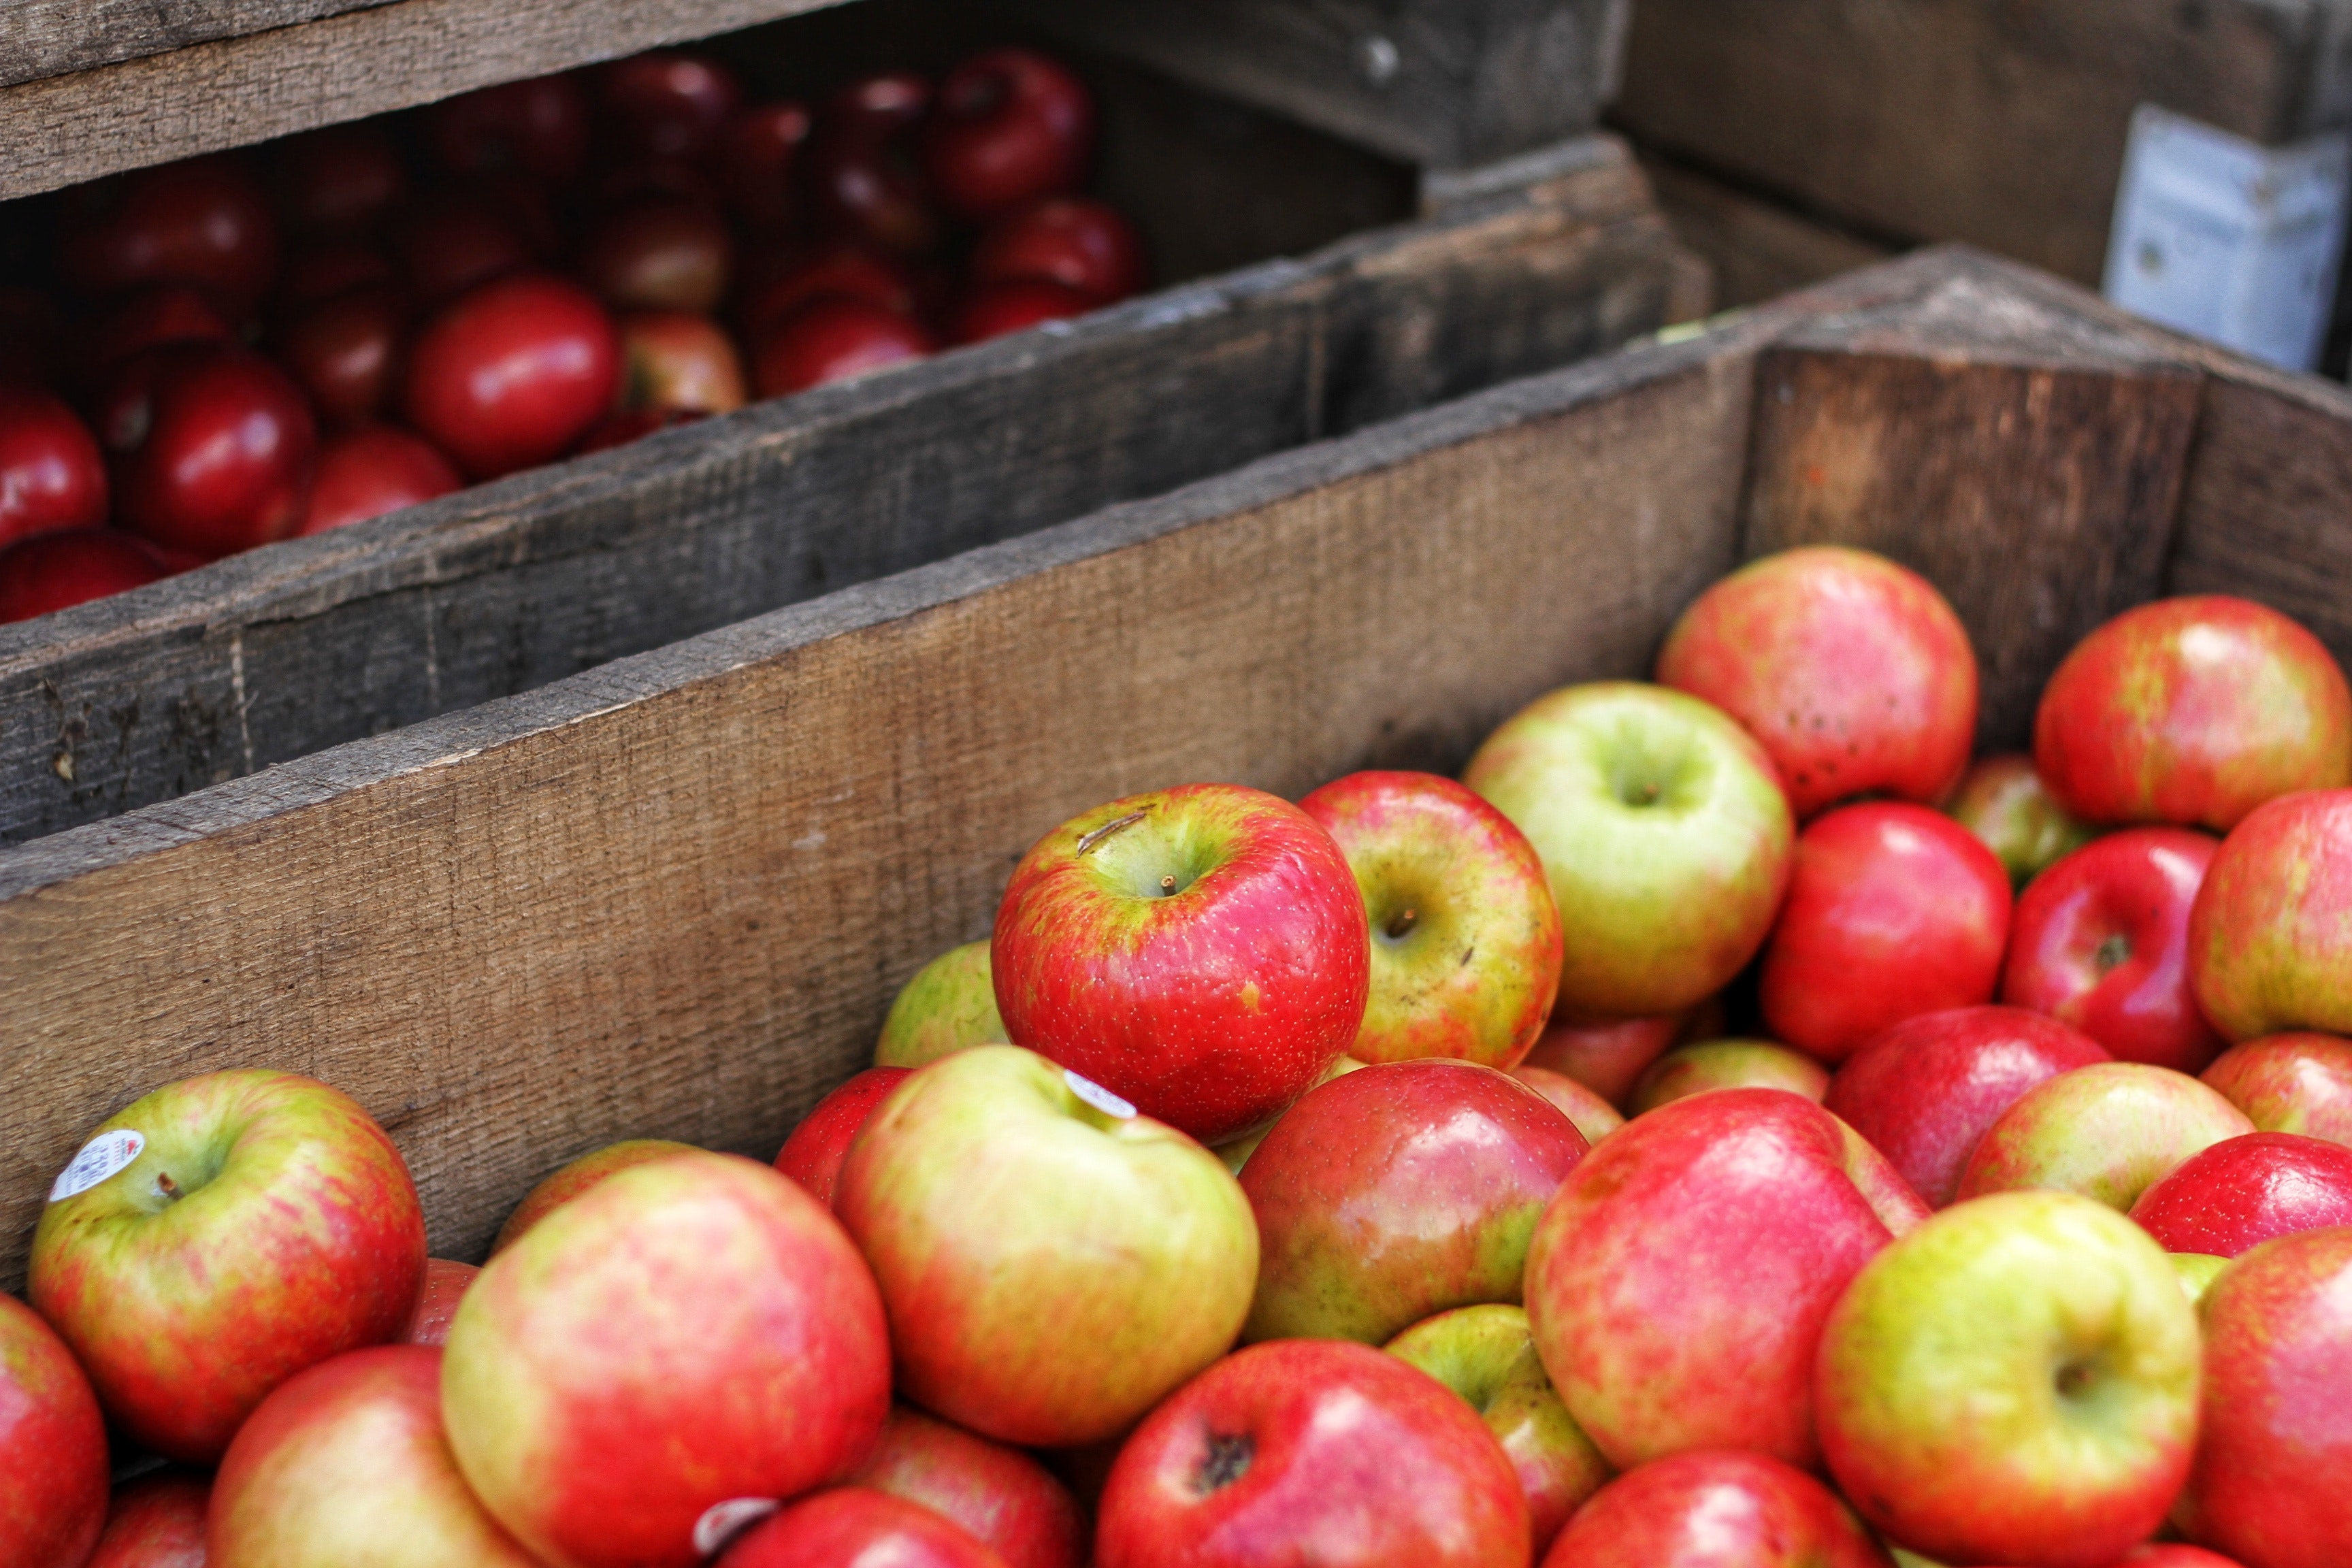 Apples are packed with substances that have so many advantages for your health and vitality.